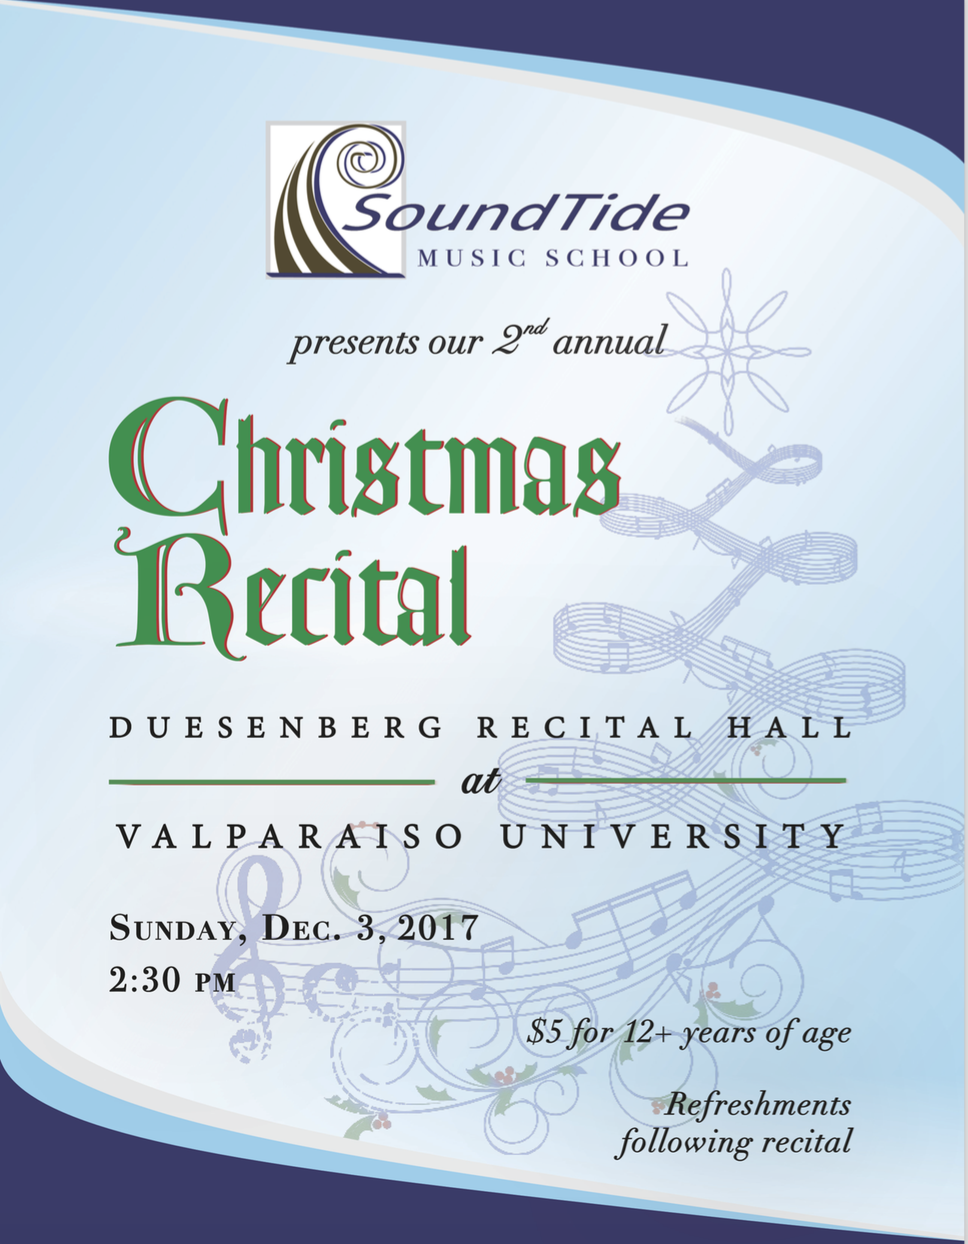 SoundTide Christmas Recital 2017.png